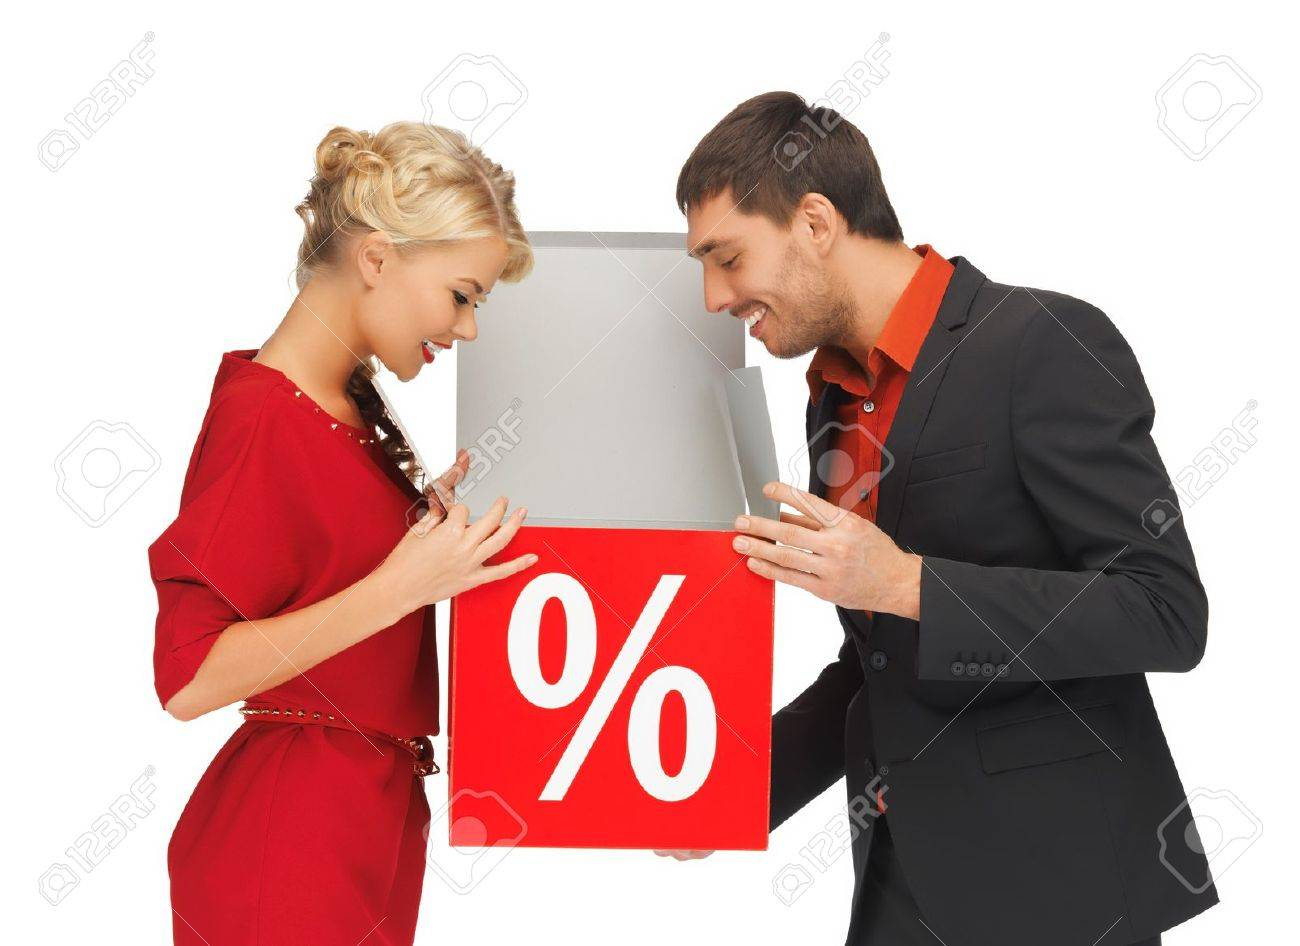 bright picture of man and woman with percent sign Stock Photo - 16084633